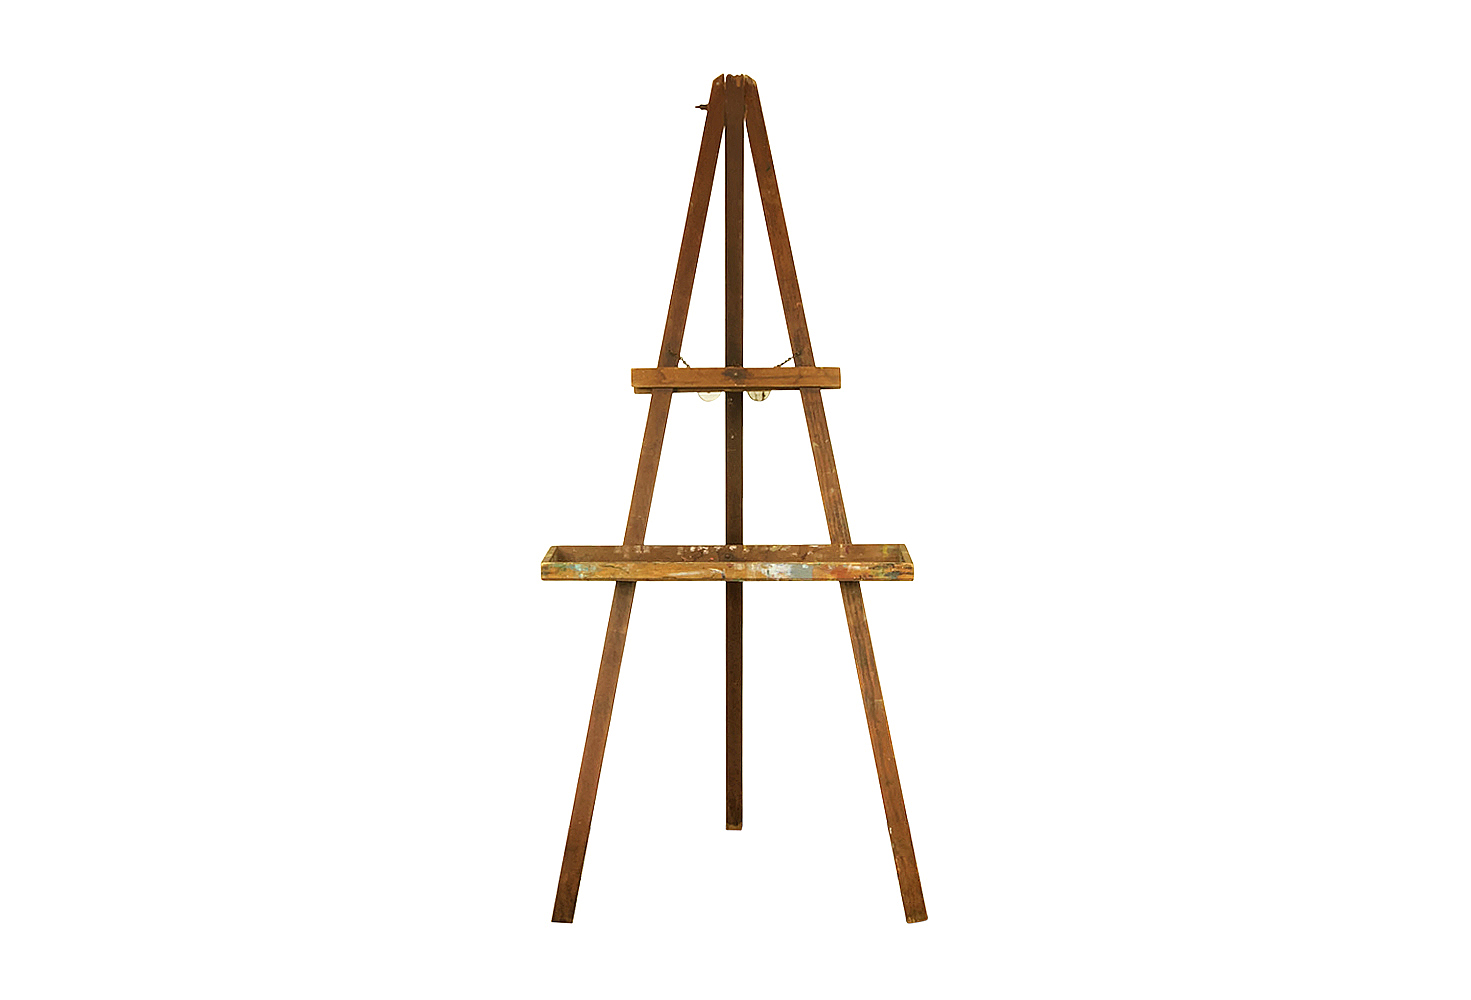 Antique Artist Easel Omero Home : antique artist easel from www.omerohome.com size 1471 x 1000 jpeg 156kB